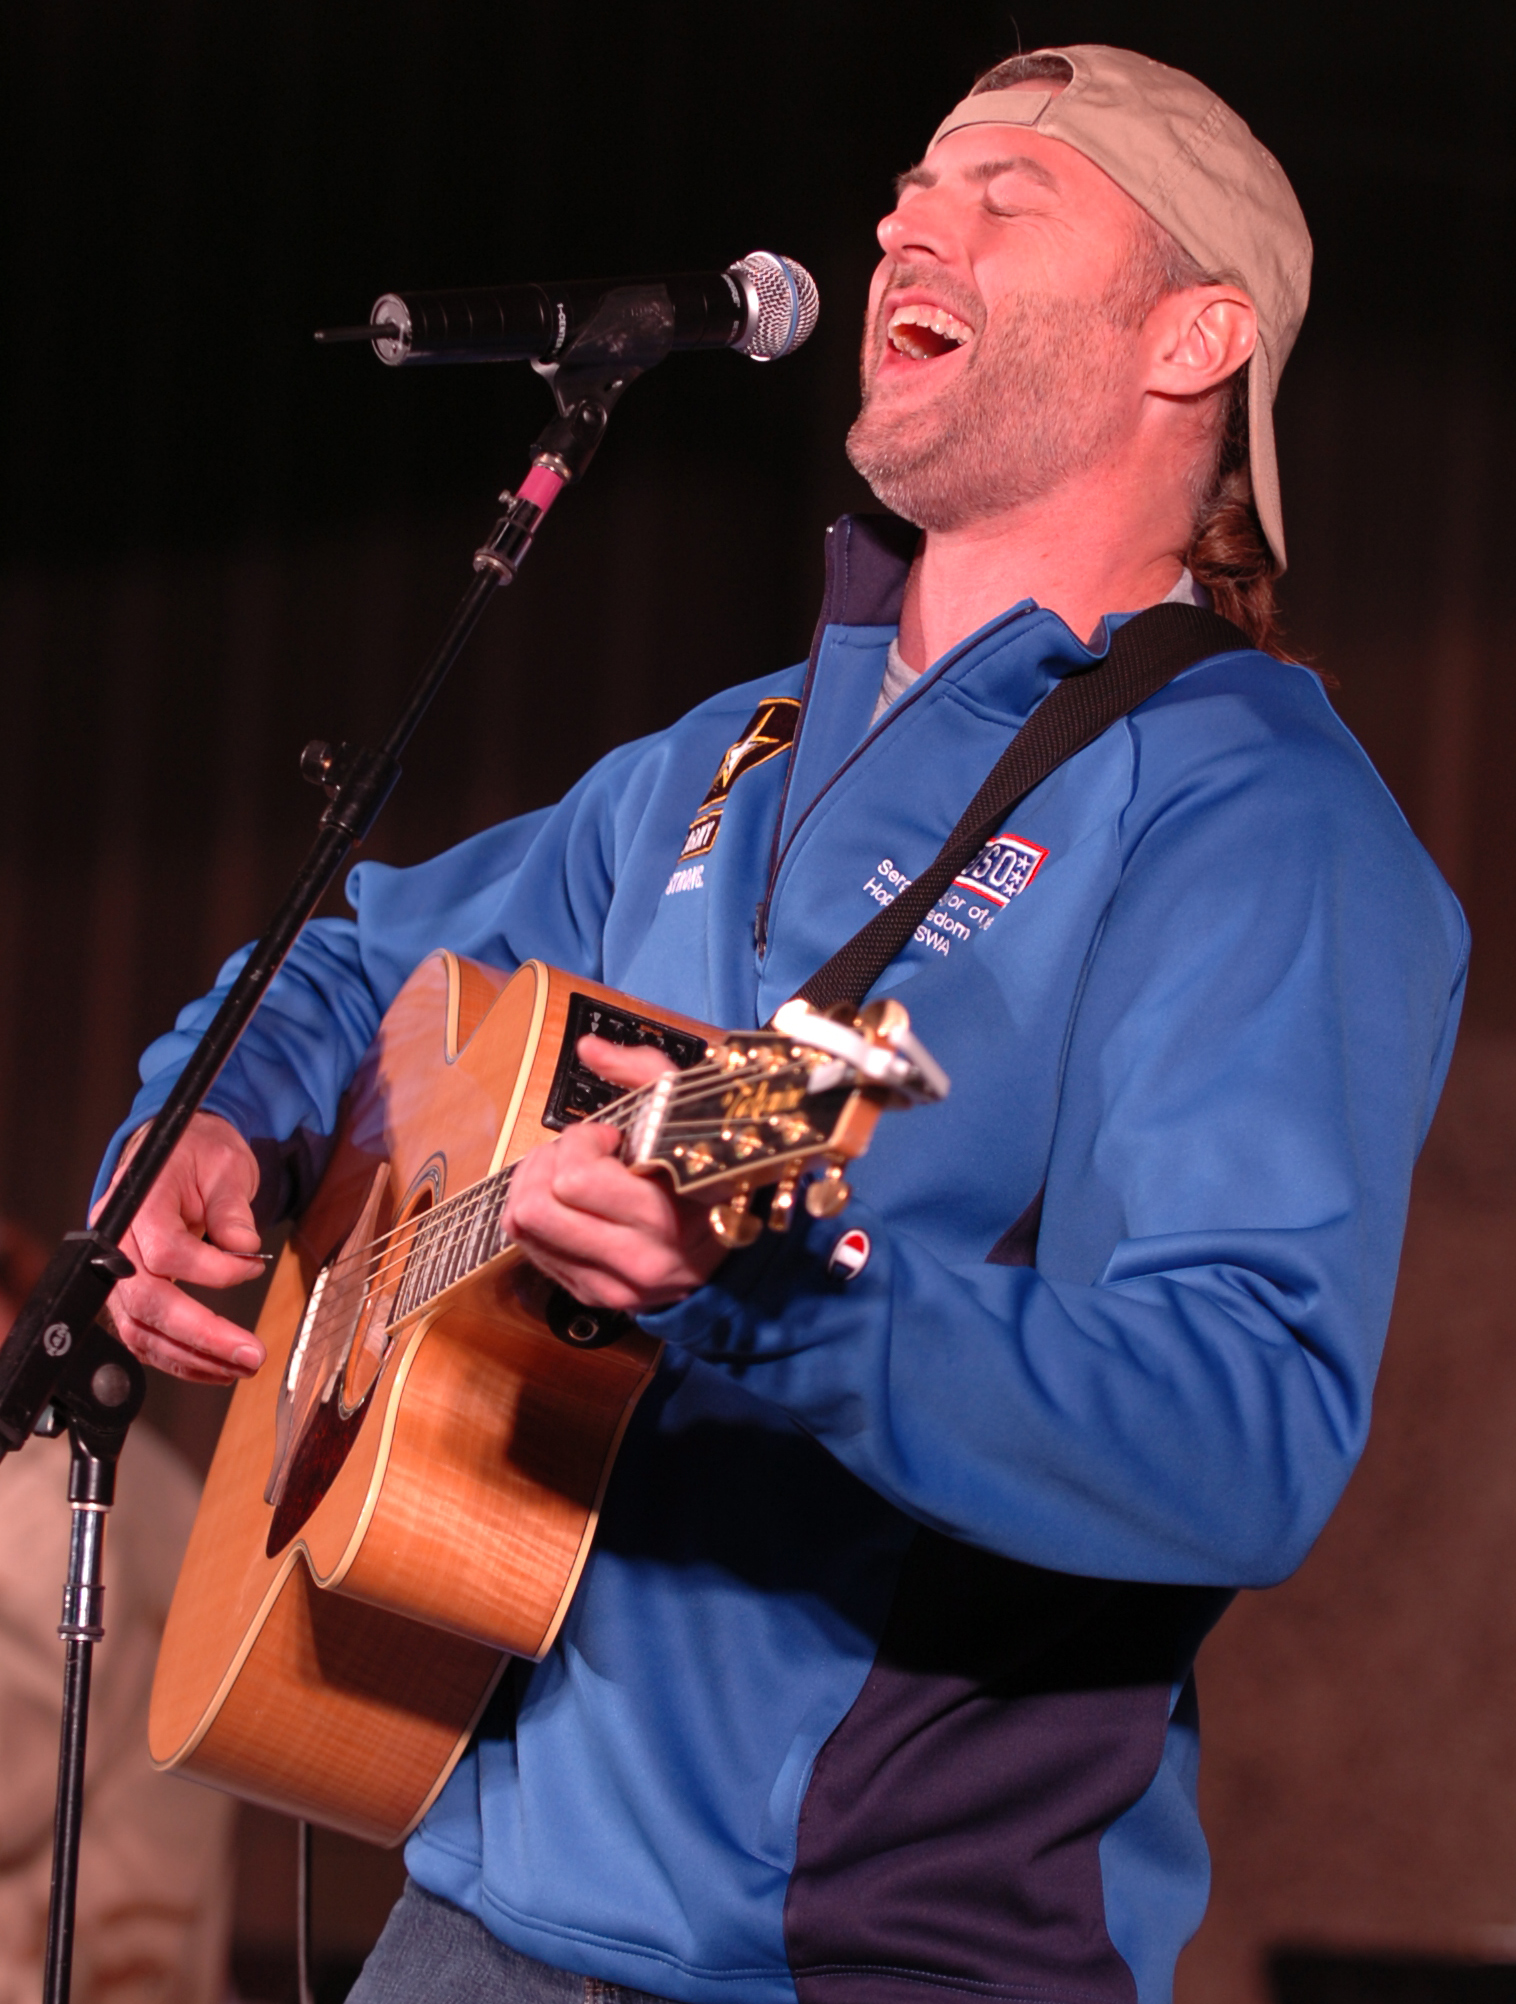 worley single women Check out lonely alone - single by darryl worley on amazon music stream ad-free or purchase cd's and mp3s now on amazoncom.